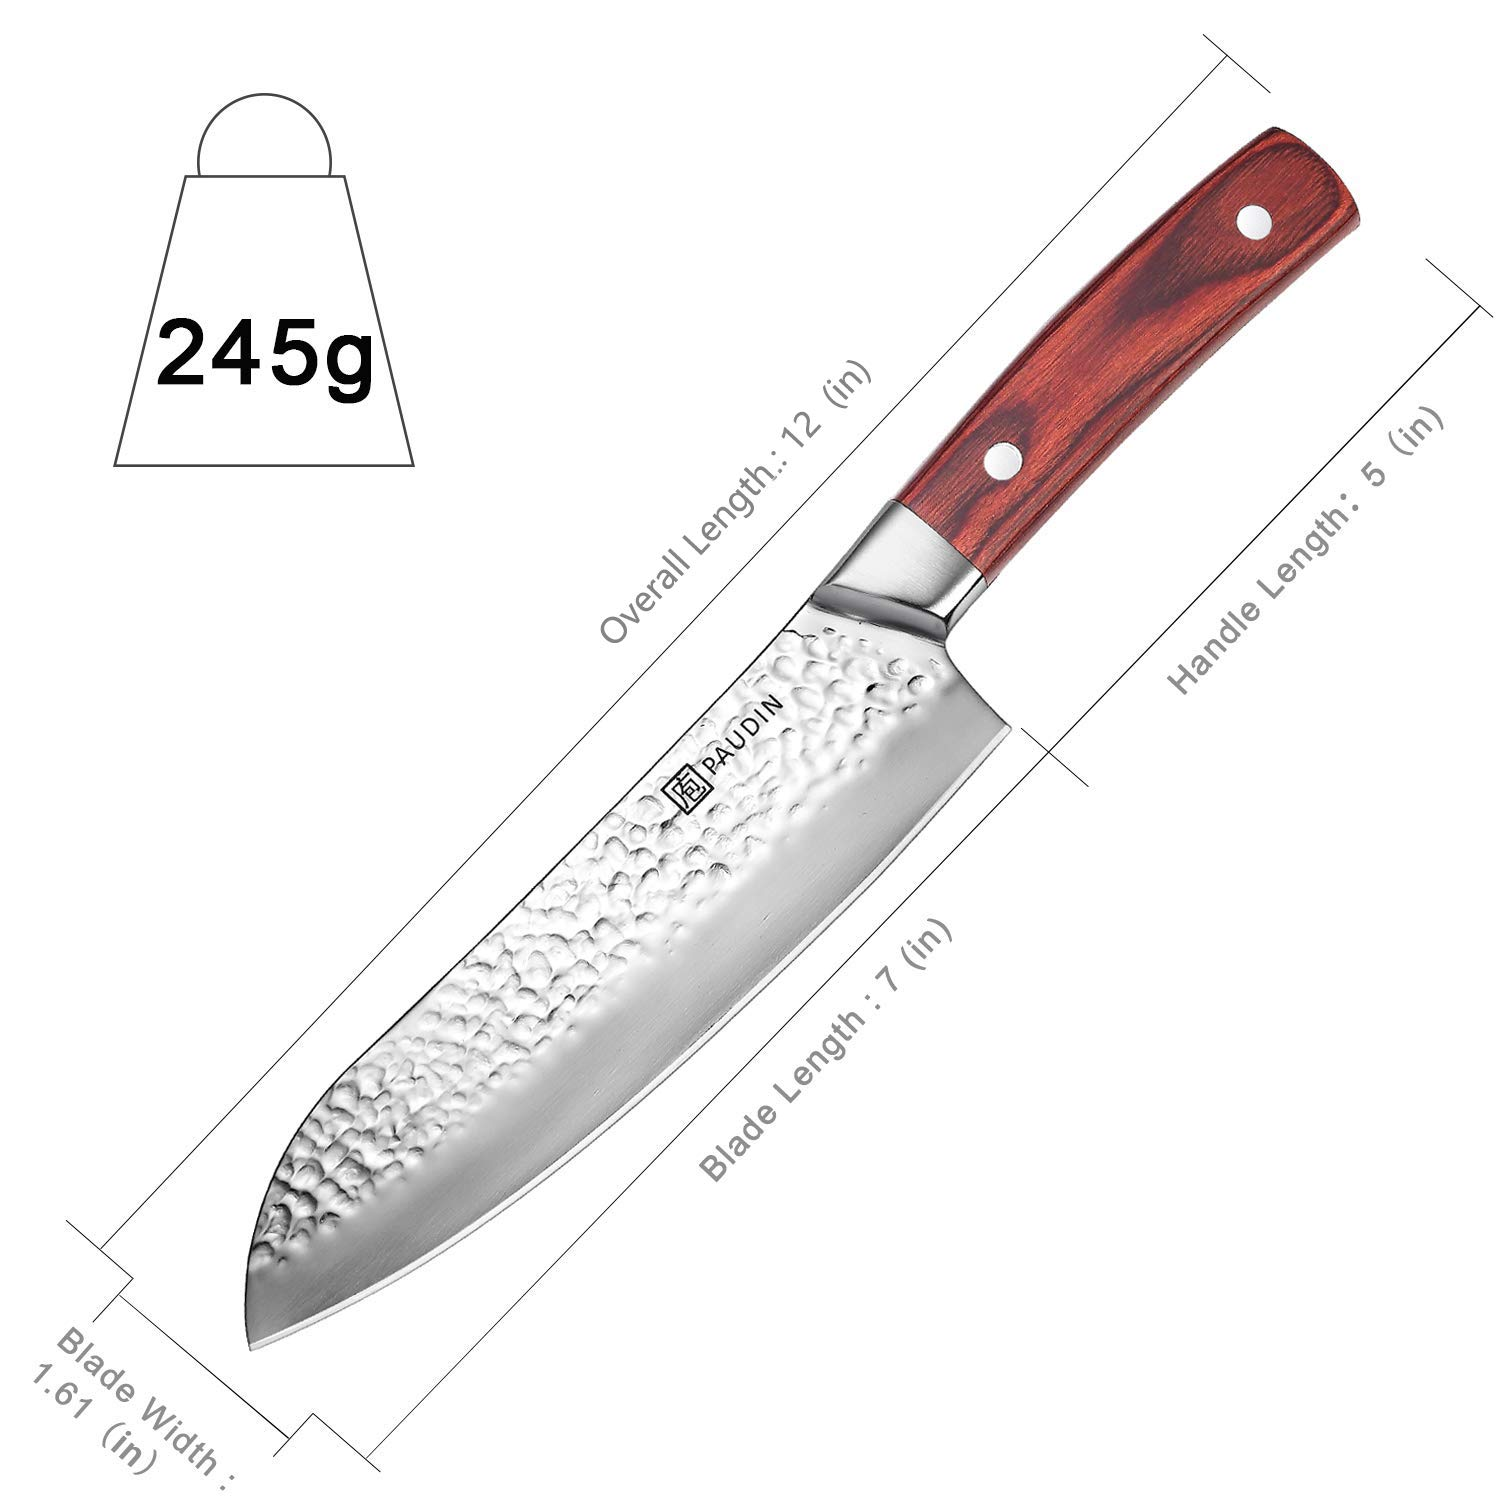 Santoku Knife 7 Inch, PAUDIN Pro kitchen knife High Carbon German Stainless Steel 7Cr17Mov Hammered Pattern, Sharp Knife with Ergonomic Pakka Wood Handle by PAUDIN (Image #7)